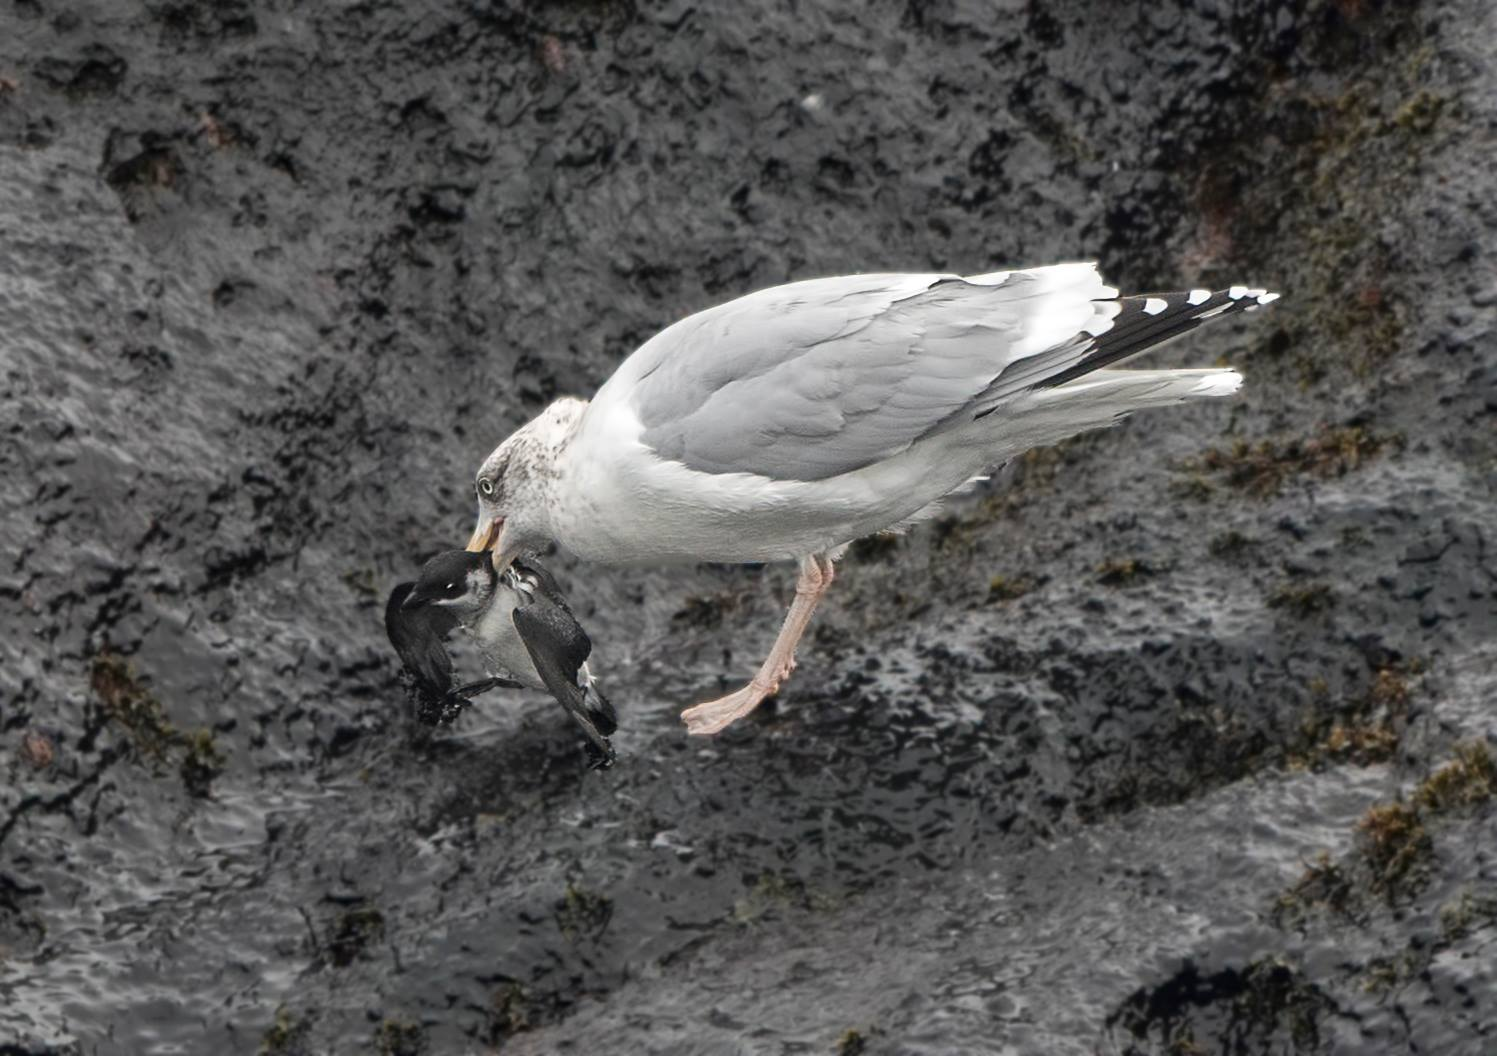 Dovekies Are Small But They Are Fighters Against All Odds This Bird Escaped And Was None The Worse For Its Encounter With This Herring Gull